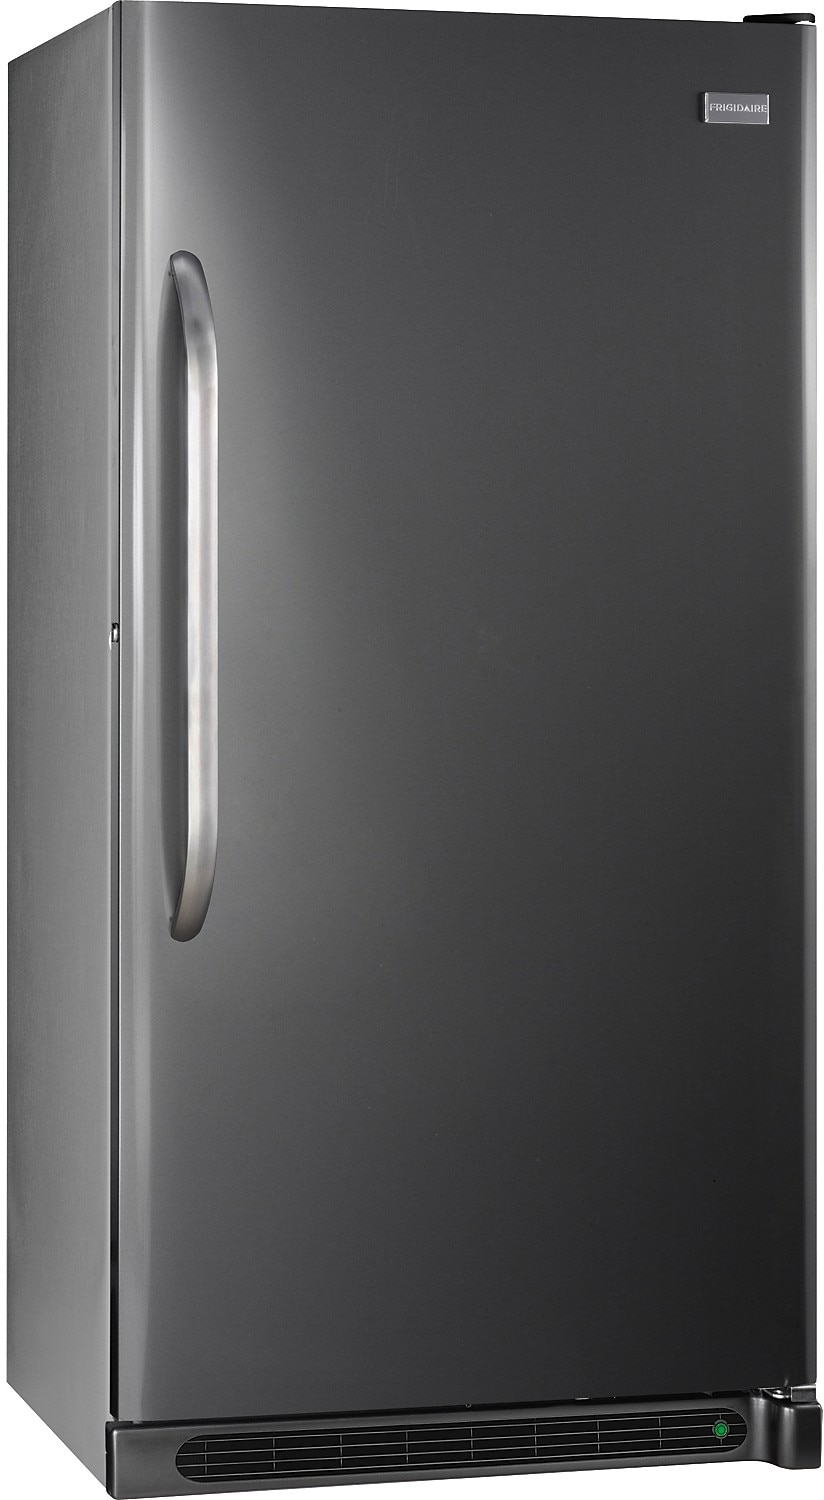 frigidaire 16 6 cu ft frost free upright freezer slate the brick. Black Bedroom Furniture Sets. Home Design Ideas